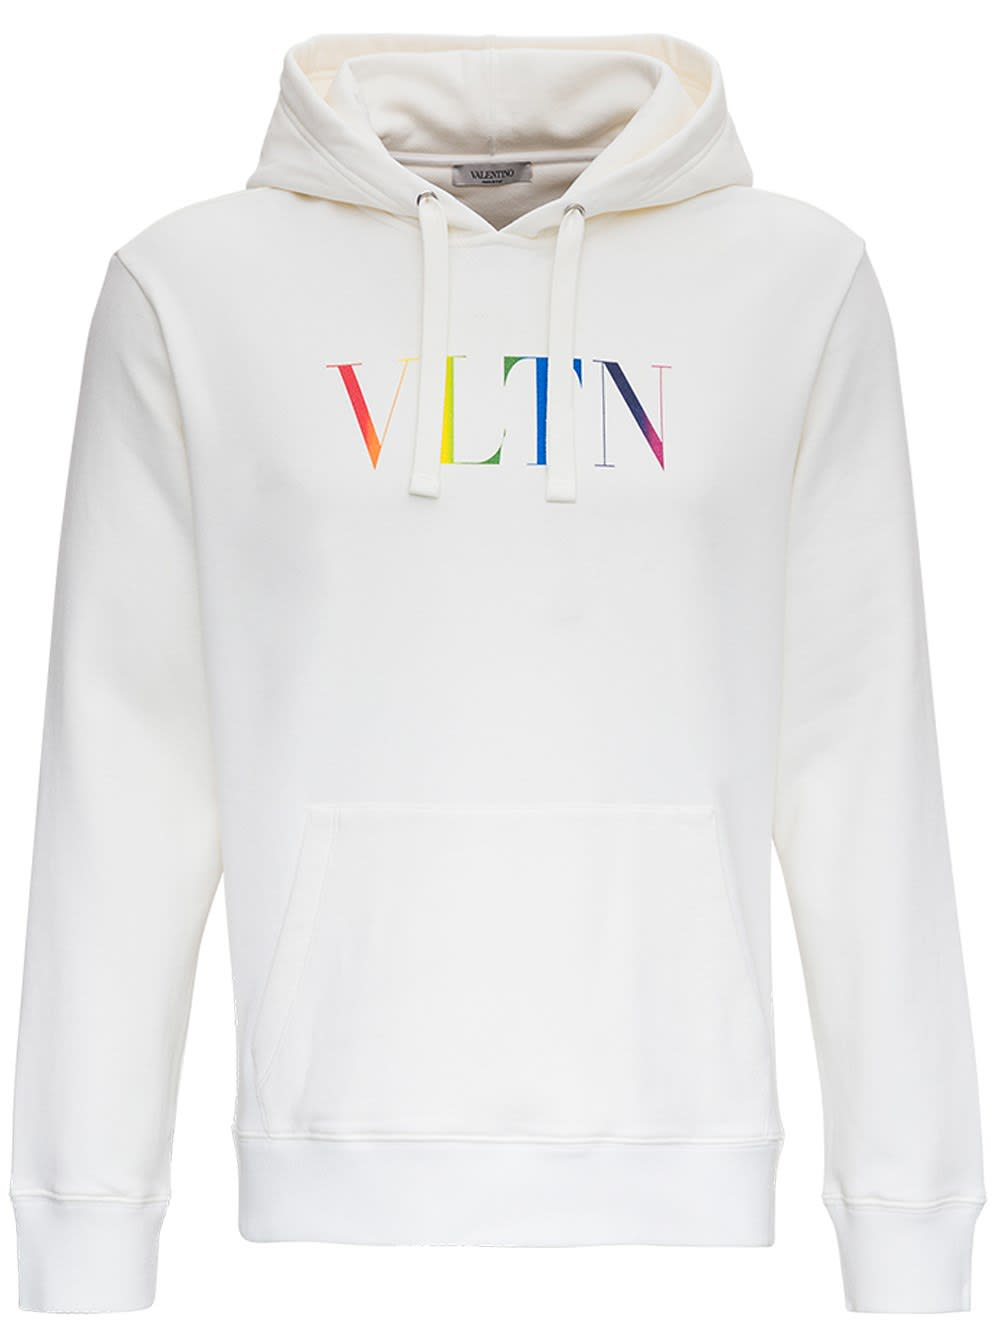 VALENTINO JERSEY HOODIE WITH VLTN LOGO PRINT